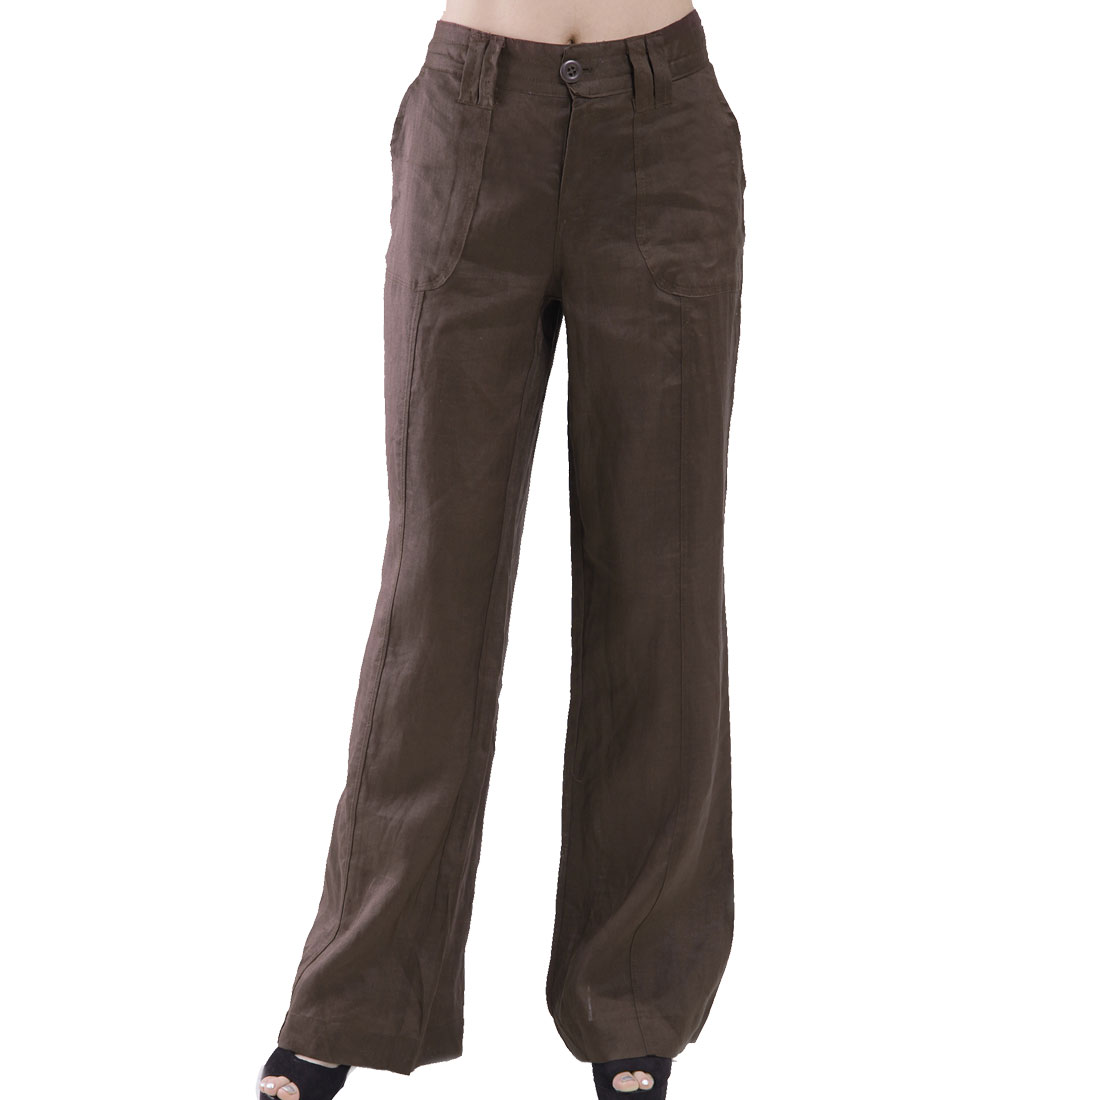 Solid Coffee Color Summer Autumn Loose Zip Fly Pants Trousers L for Woman